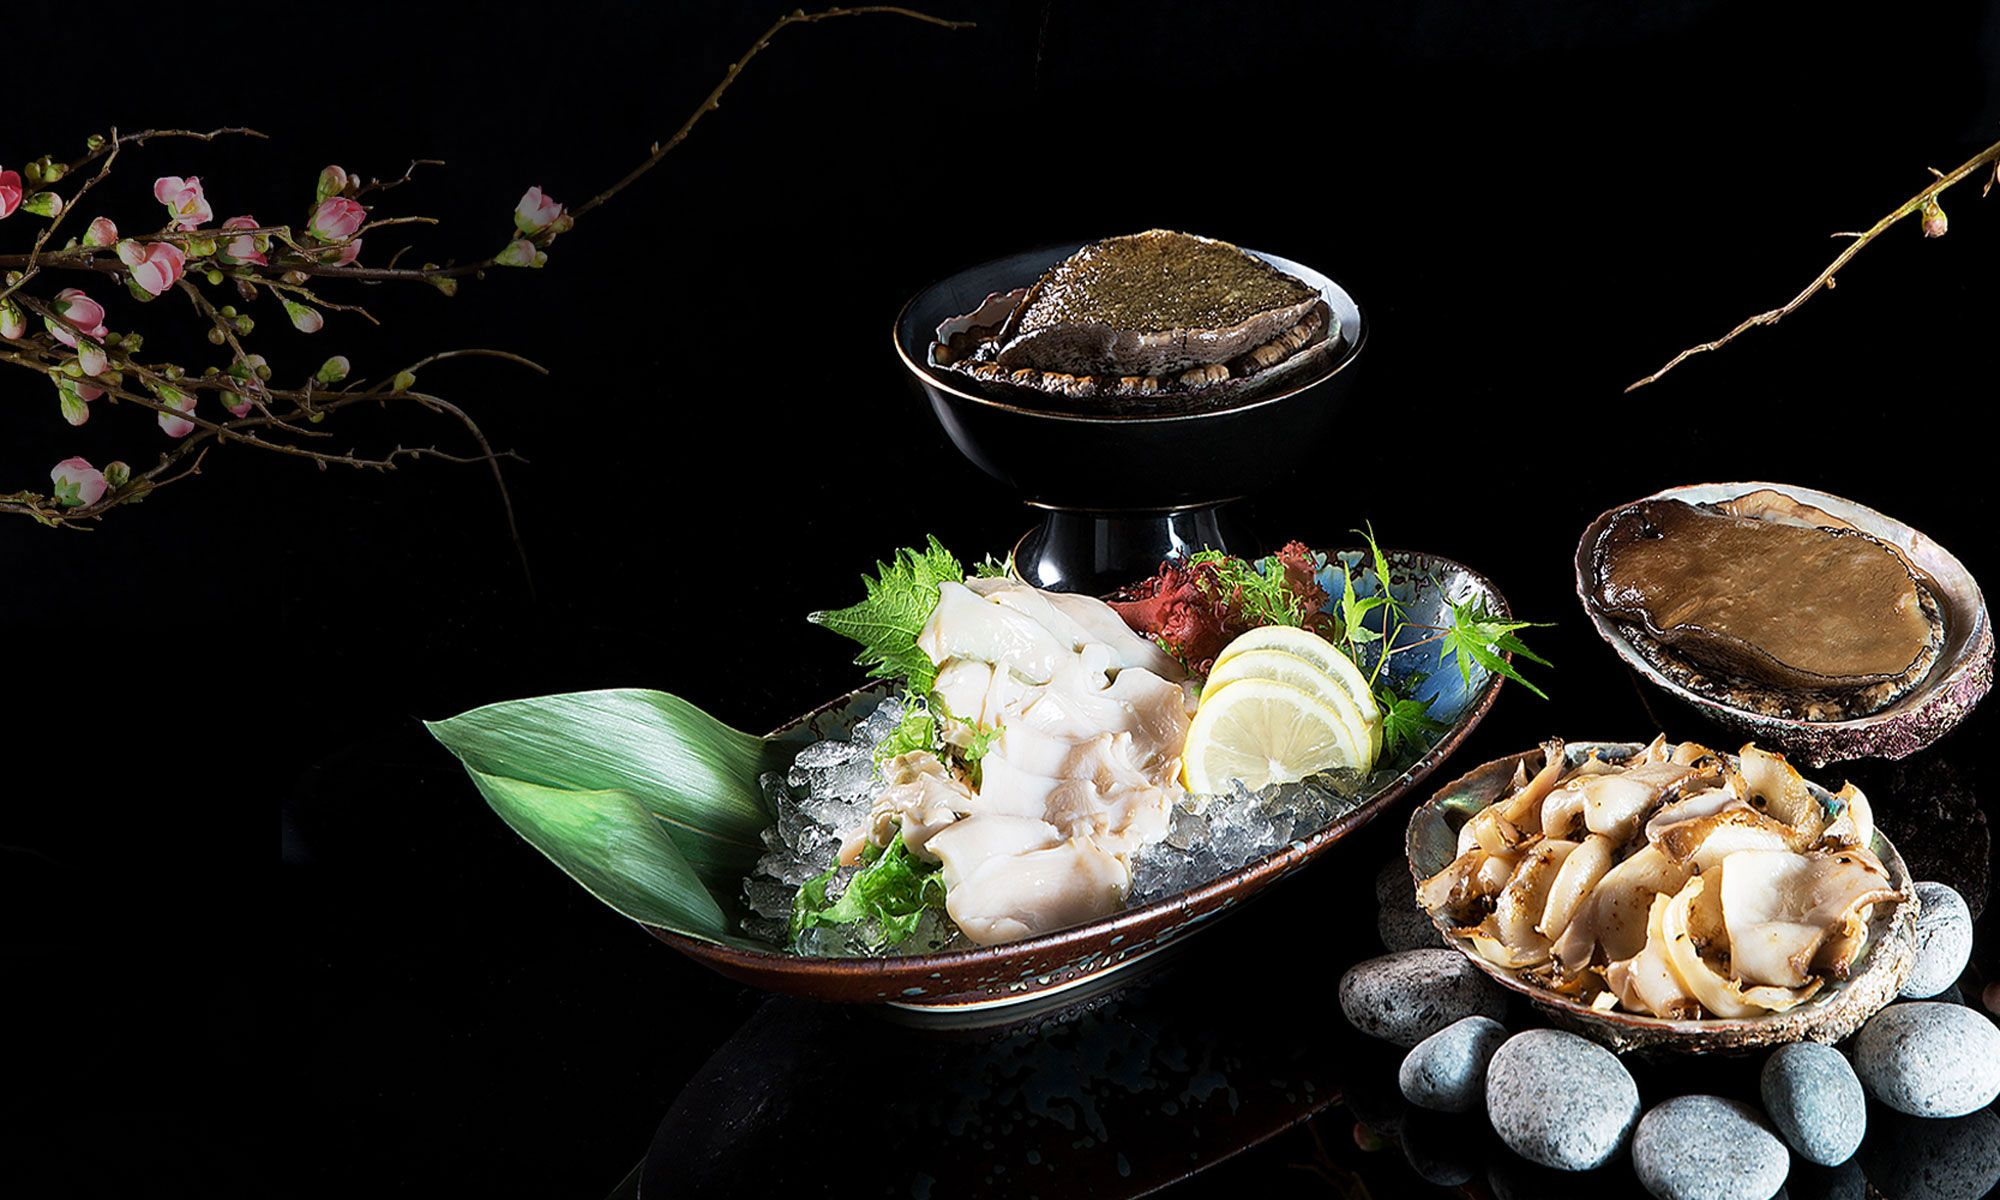 Unkai Japanese Cuisine Features Precious Wild-Caught Abalone From Japan